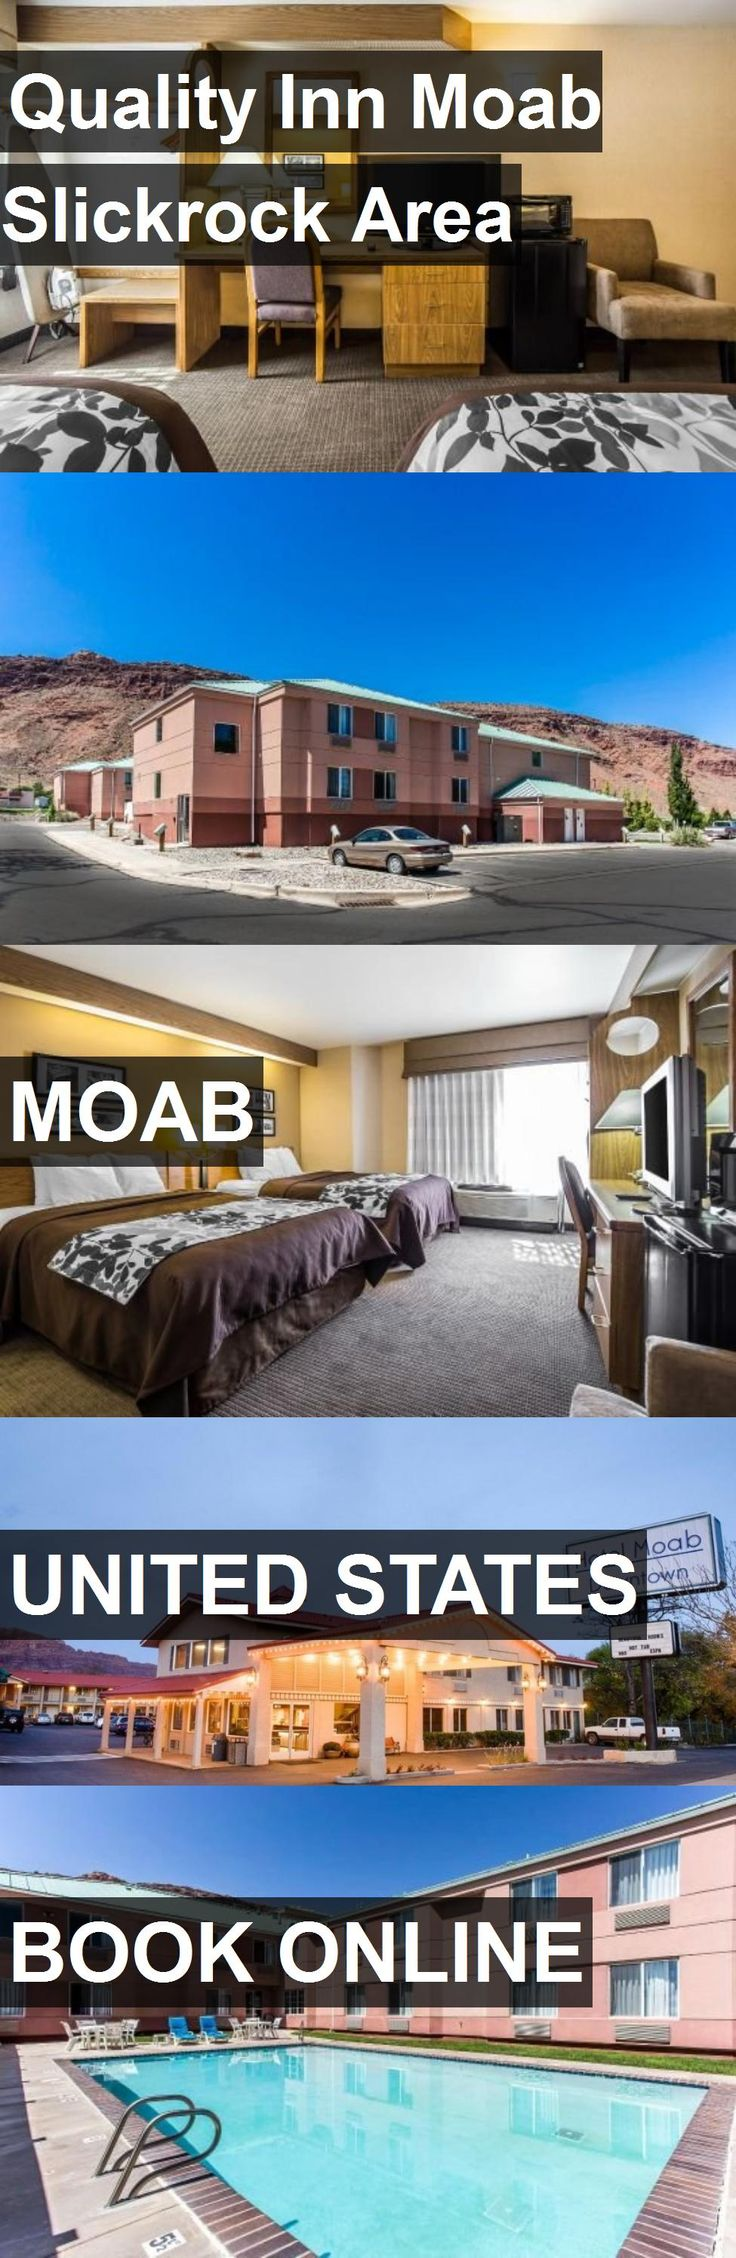 Hotel Quality Inn Moab Slickrock Area in Moab, United States. For more information, photos, reviews and best prices please follow the link. #UnitedStates #Moab #hotel #travel #vacation